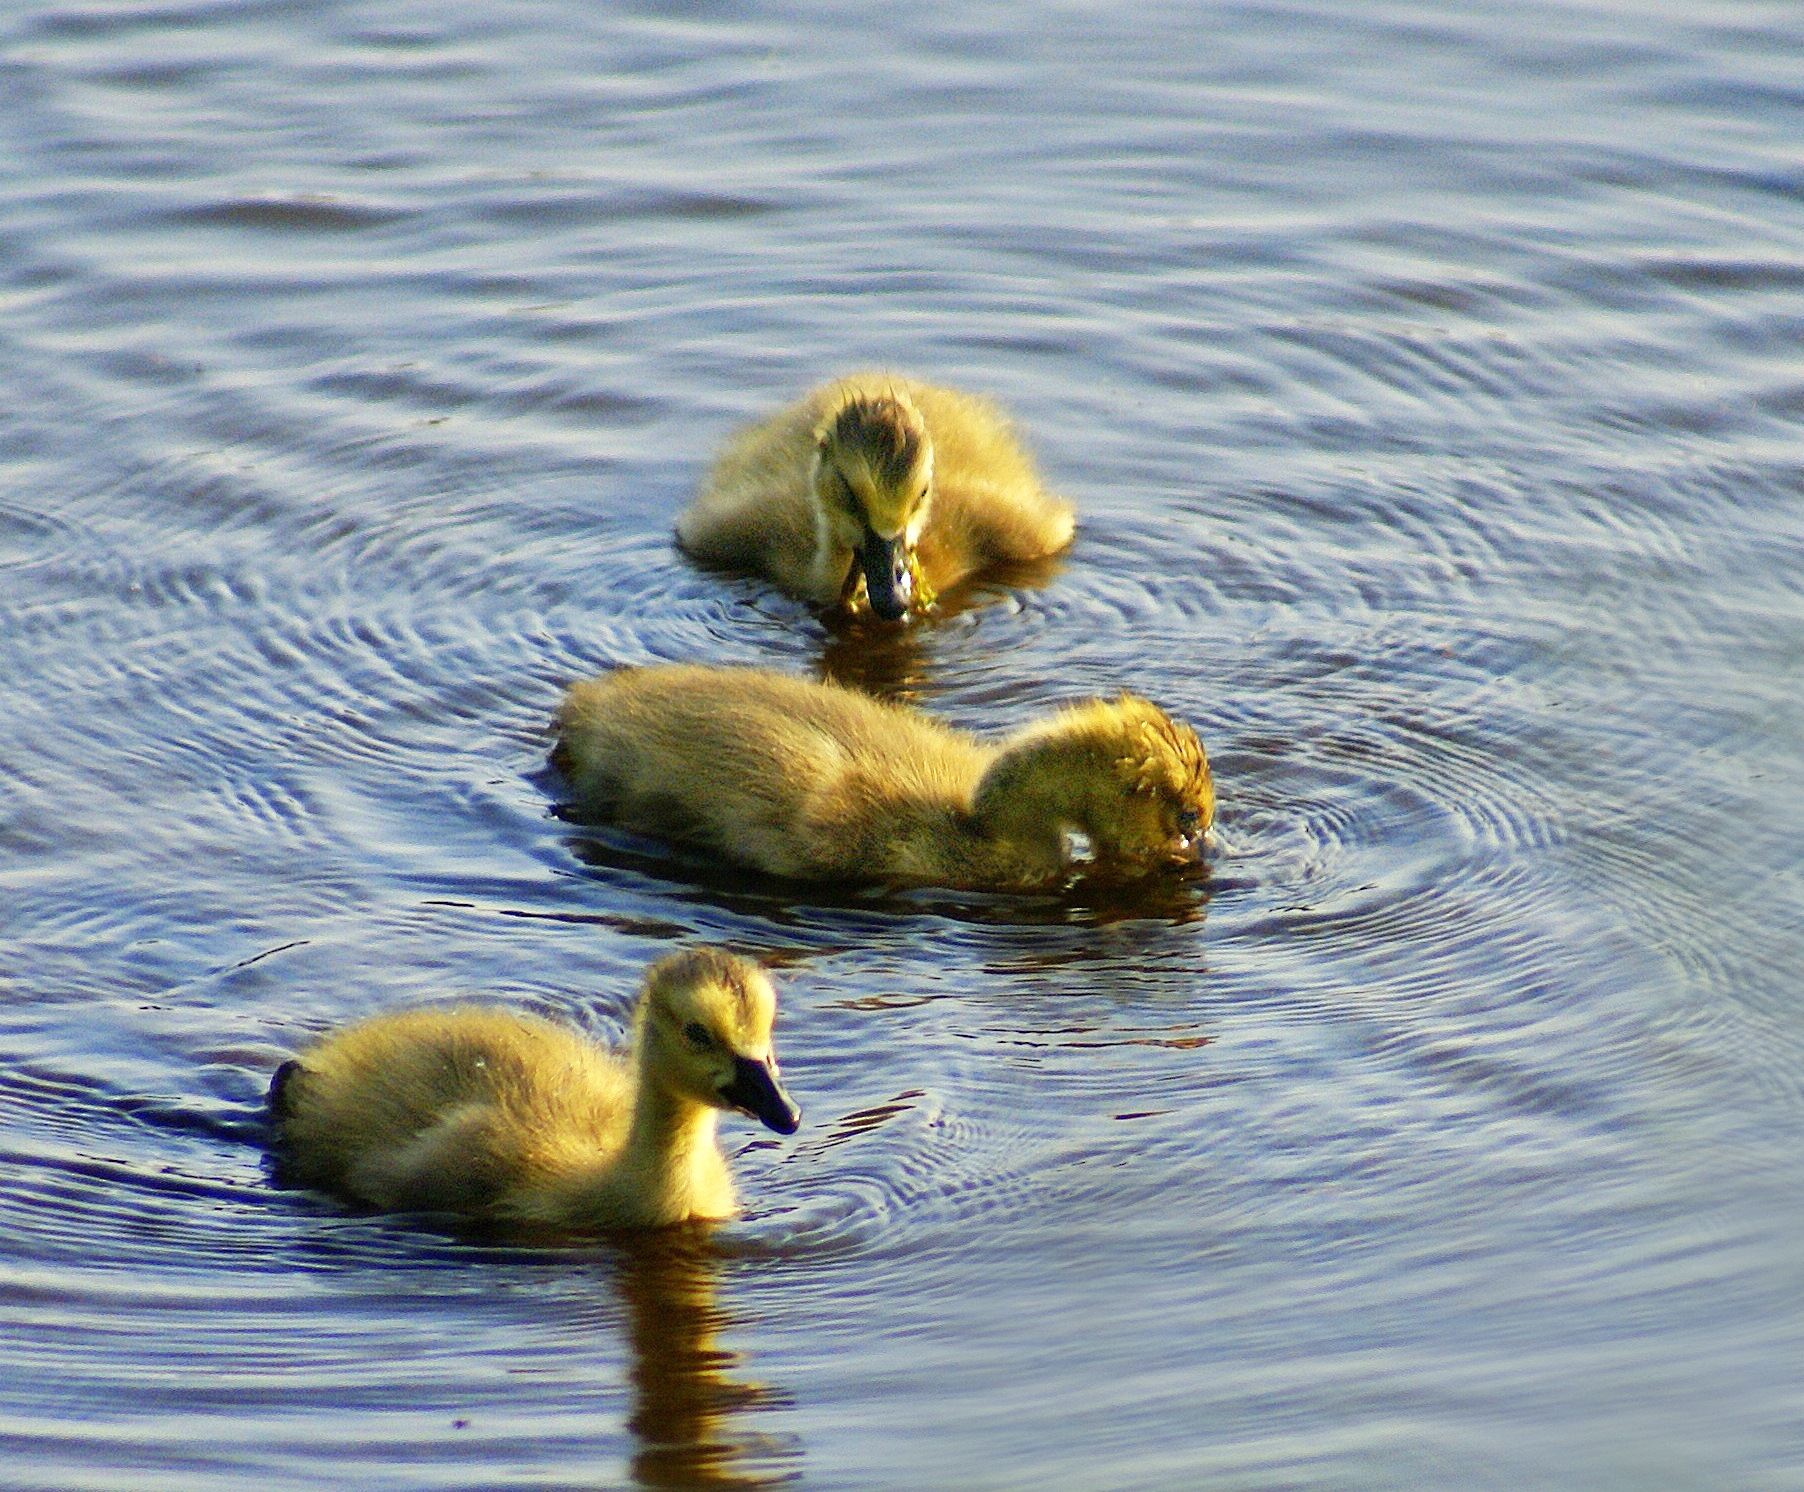 Ducklings by mfontaine